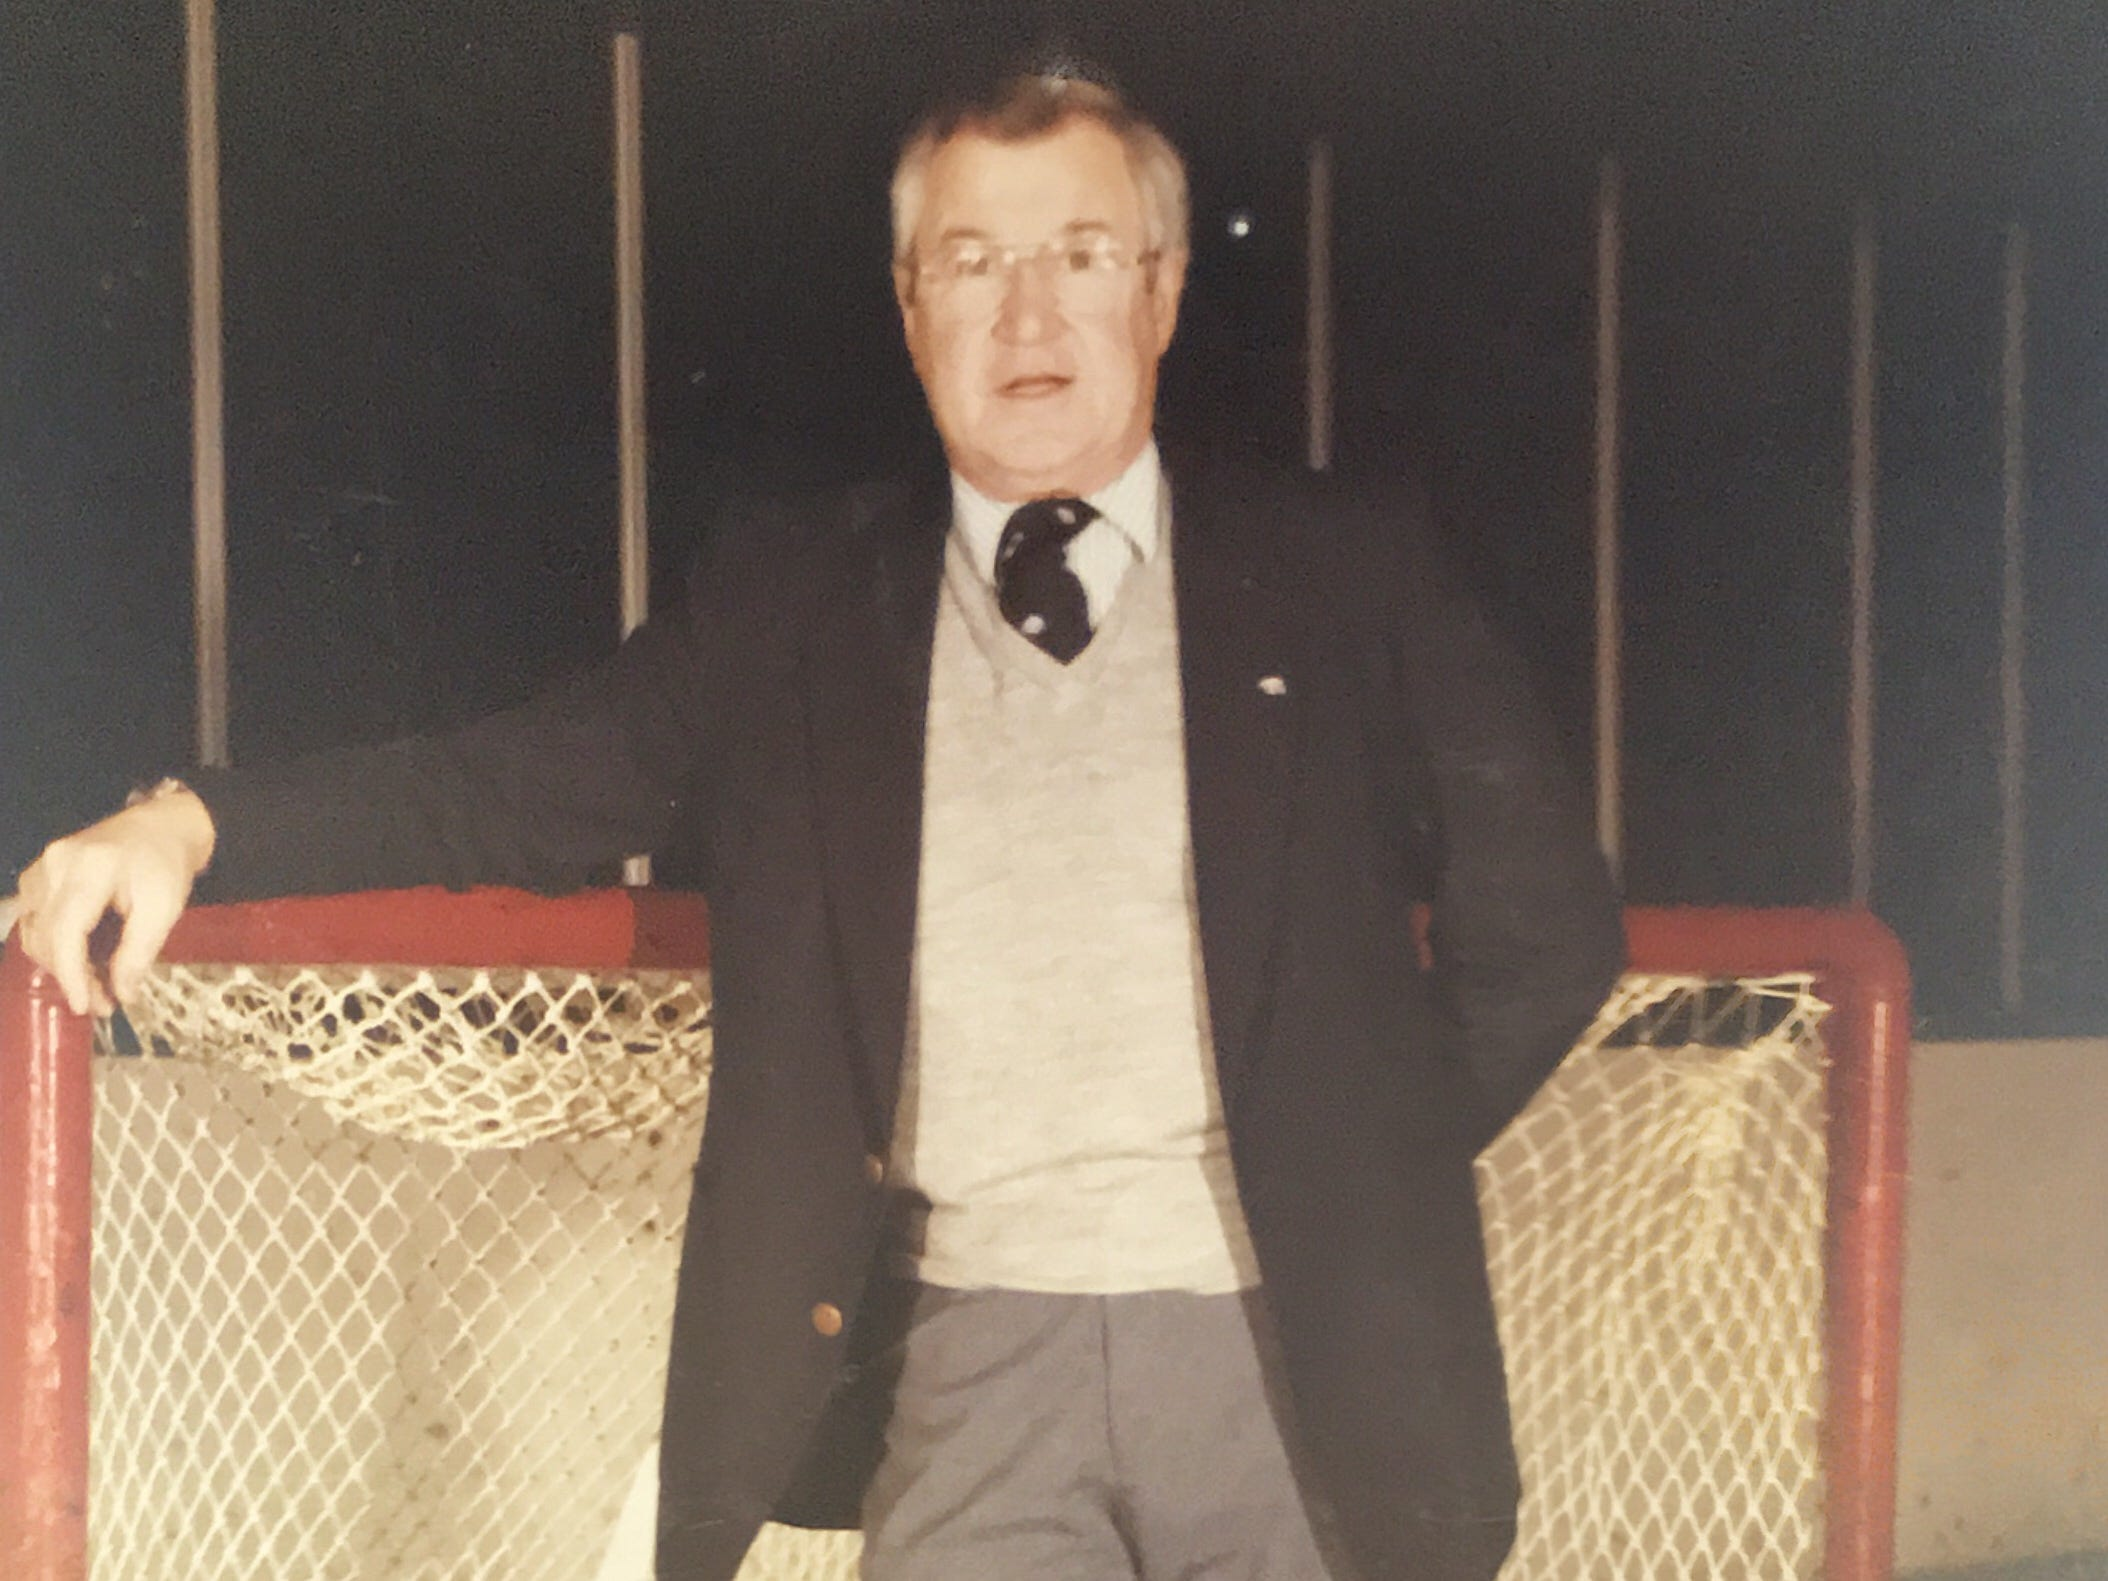 Joe Crozier spent 63 years in professional hockey as a player, coach, general manager, part-owner and ticket salesman.